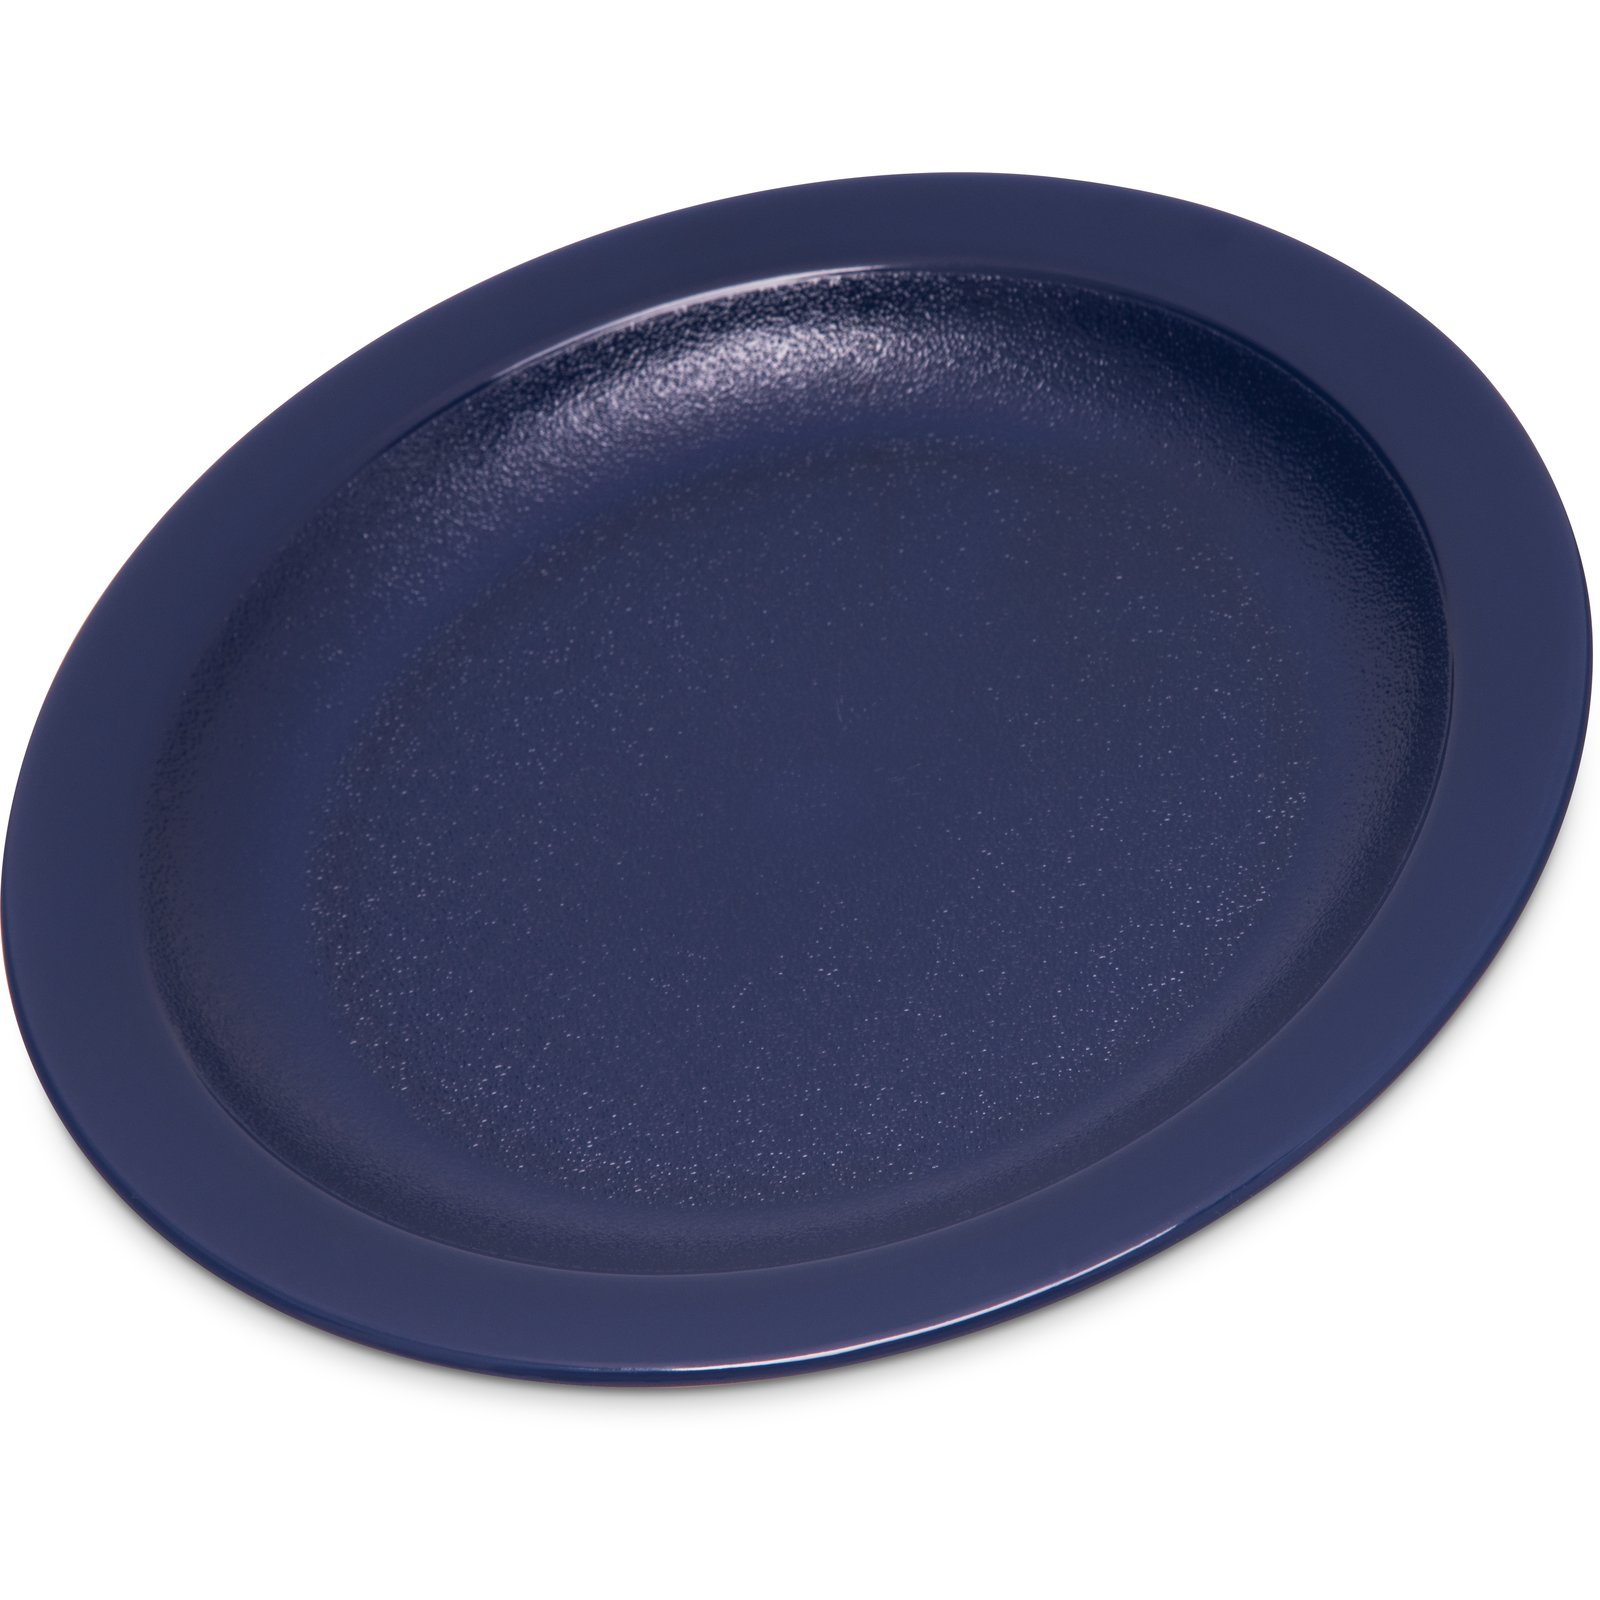 PCD20650 - Polycarbonate Narrow Rim Plate 6.5\  - Dark Blue  sc 1 st  Carlisle FoodService Products & PCD20650 - Polycarbonate Narrow Rim Plate 6.5\